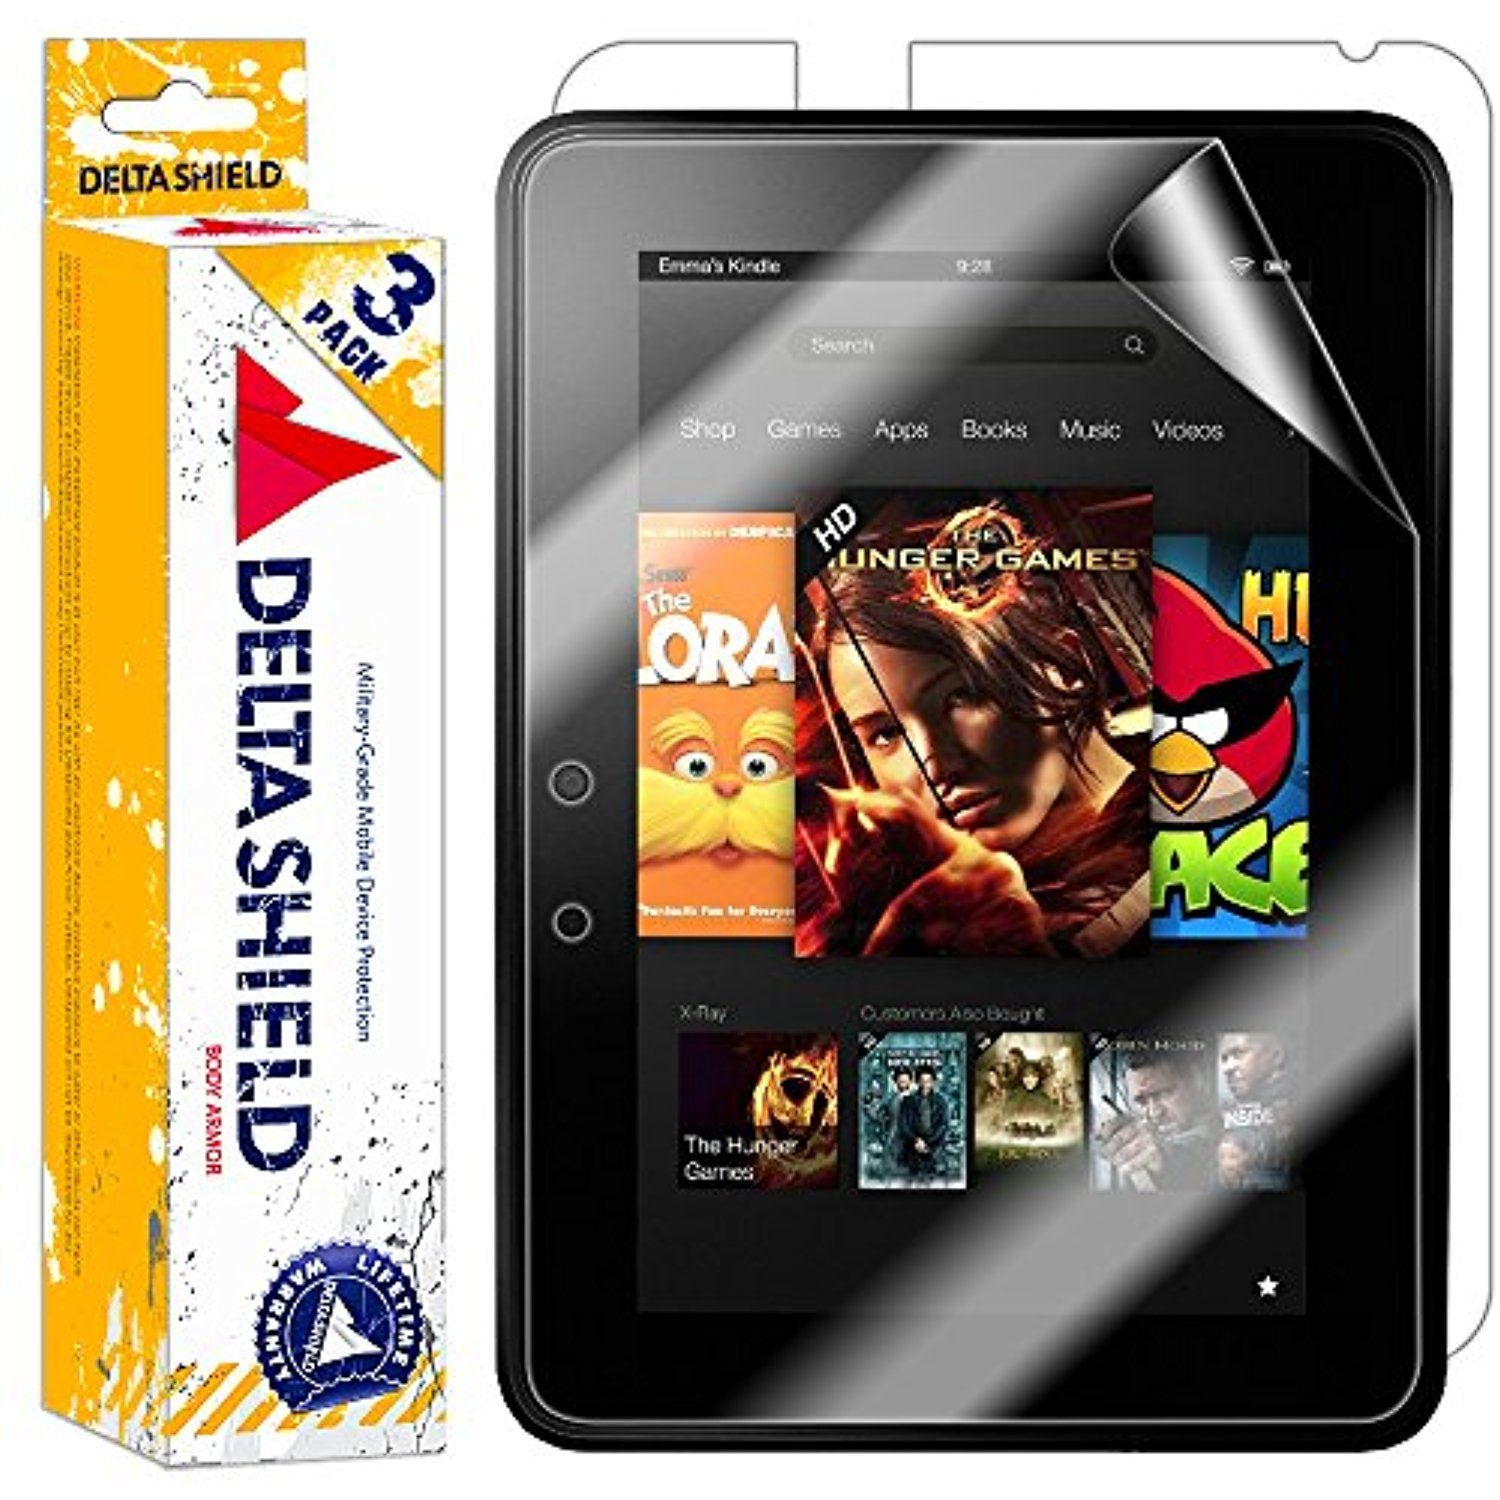 3 pack deltashield bodyarmor amazon kindle fire hd 7 screen 3 pack deltashield bodyarmor amazon kindle fire hd 7 screen protector publicscrutiny Image collections